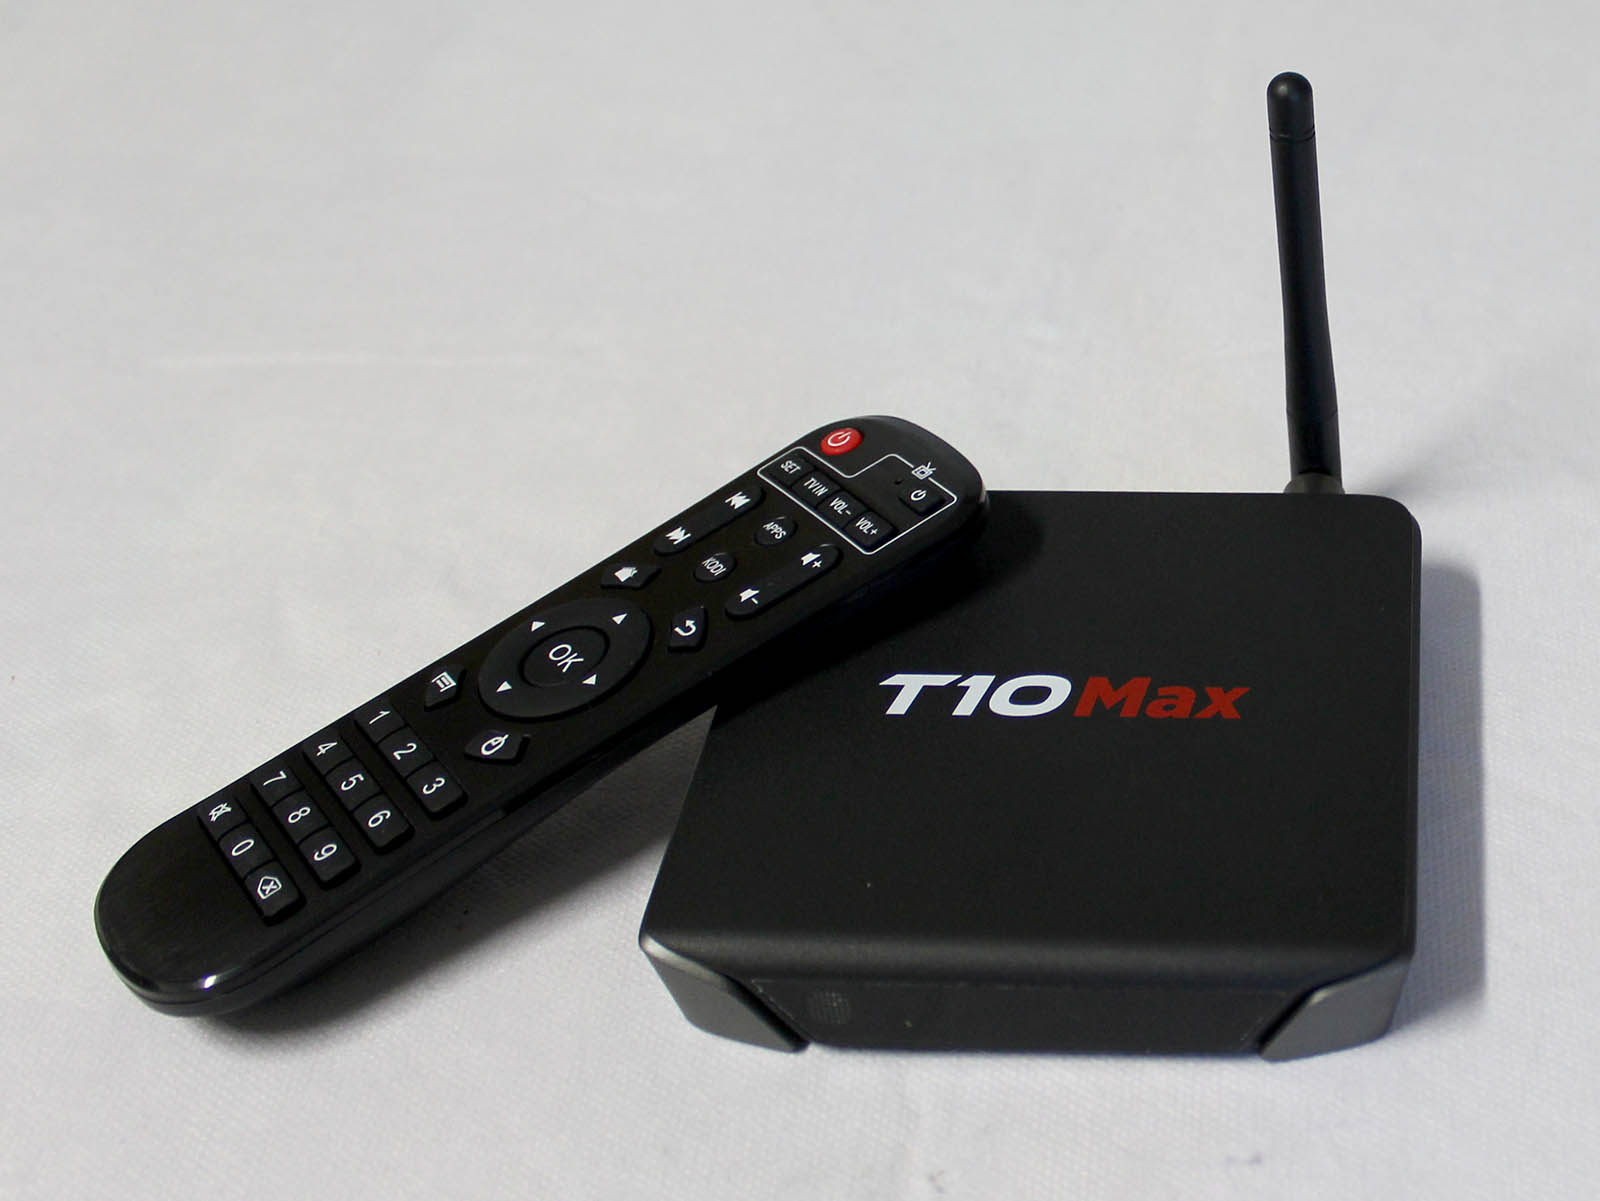 Android TV Box Bqeel T10 Max